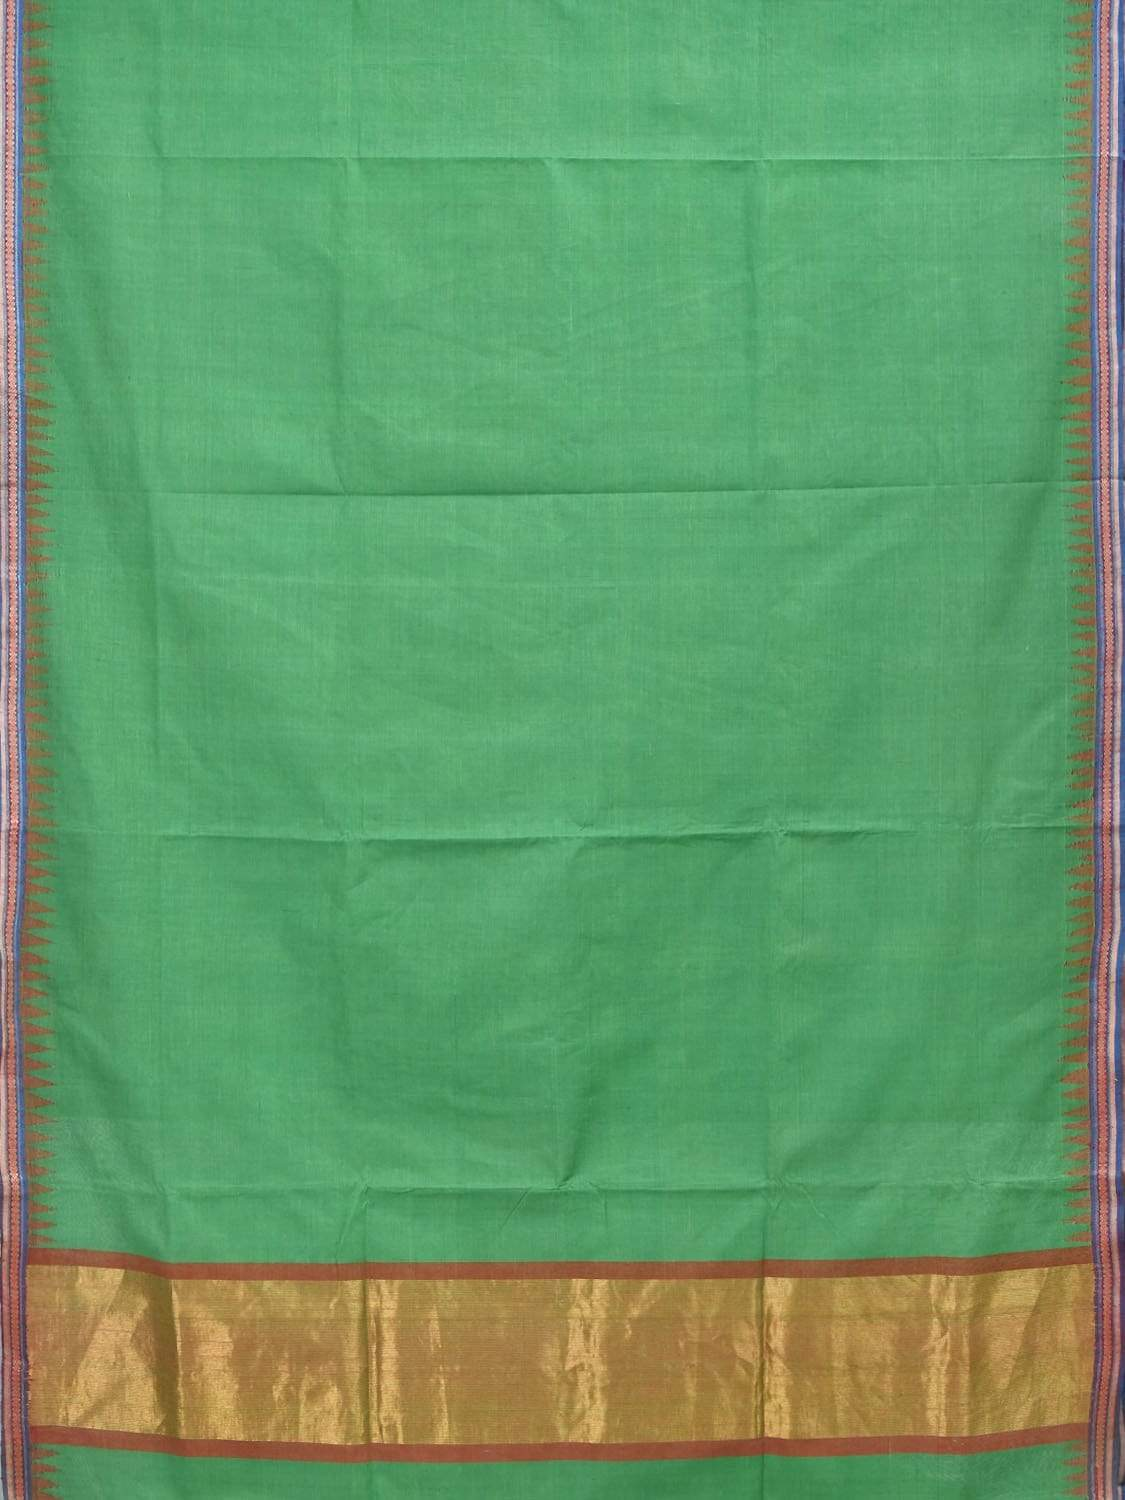 Green Khadi Cotton Handloom Plain Saree with Doby Border Design Kh0436